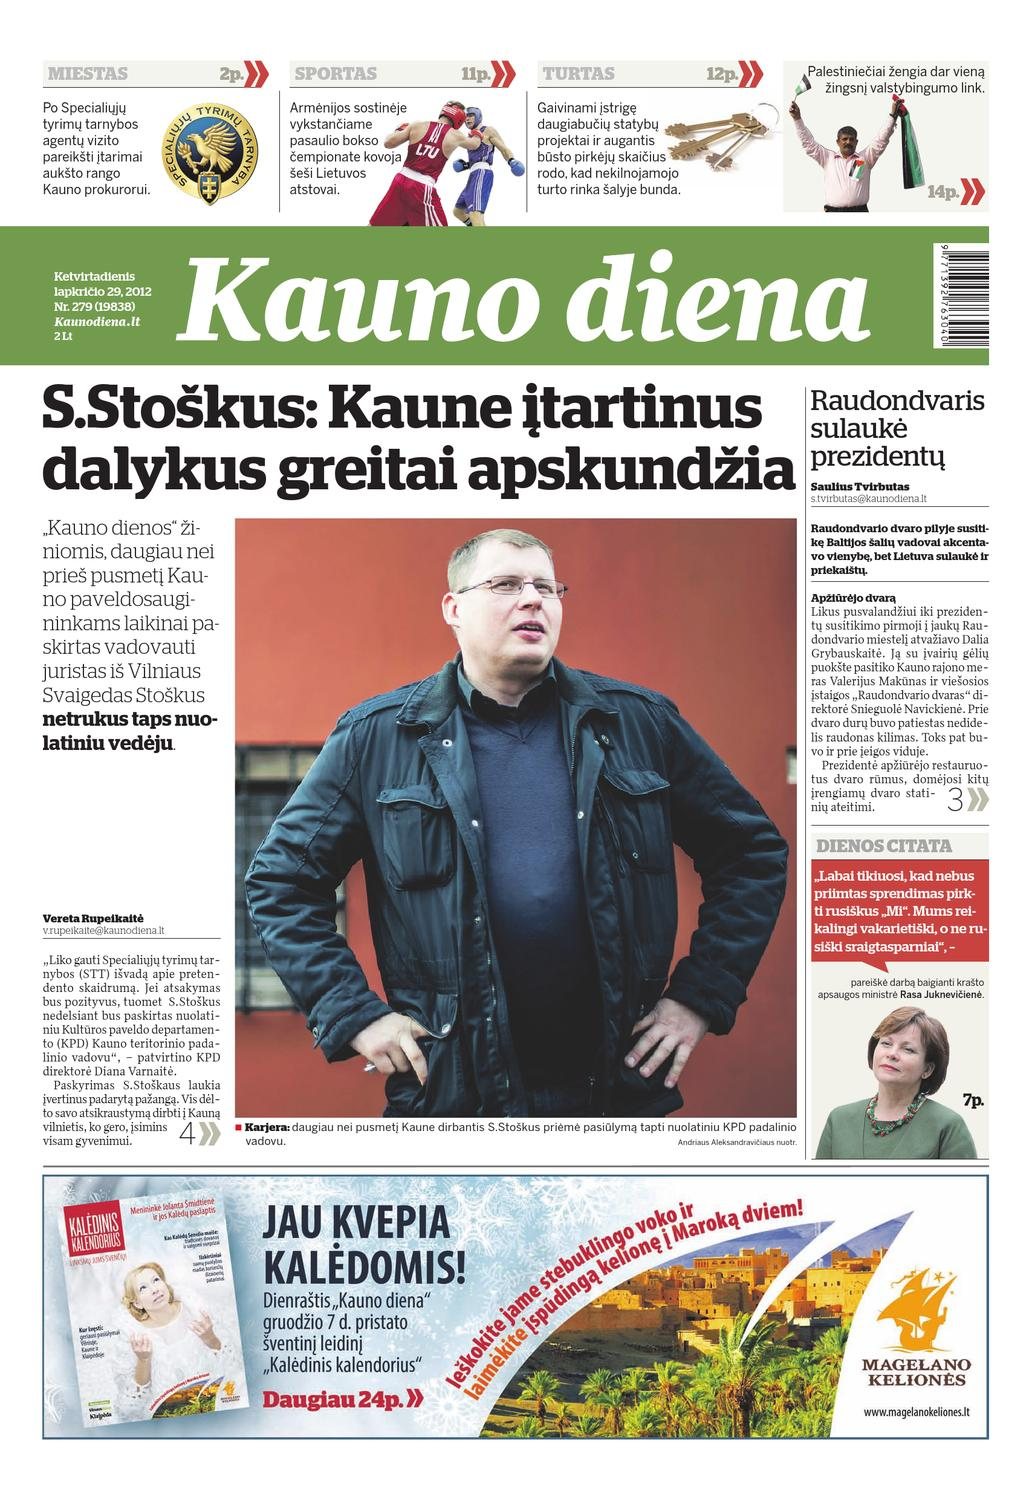 2012-11-29 Kauno diena by Diena Media News - issuu